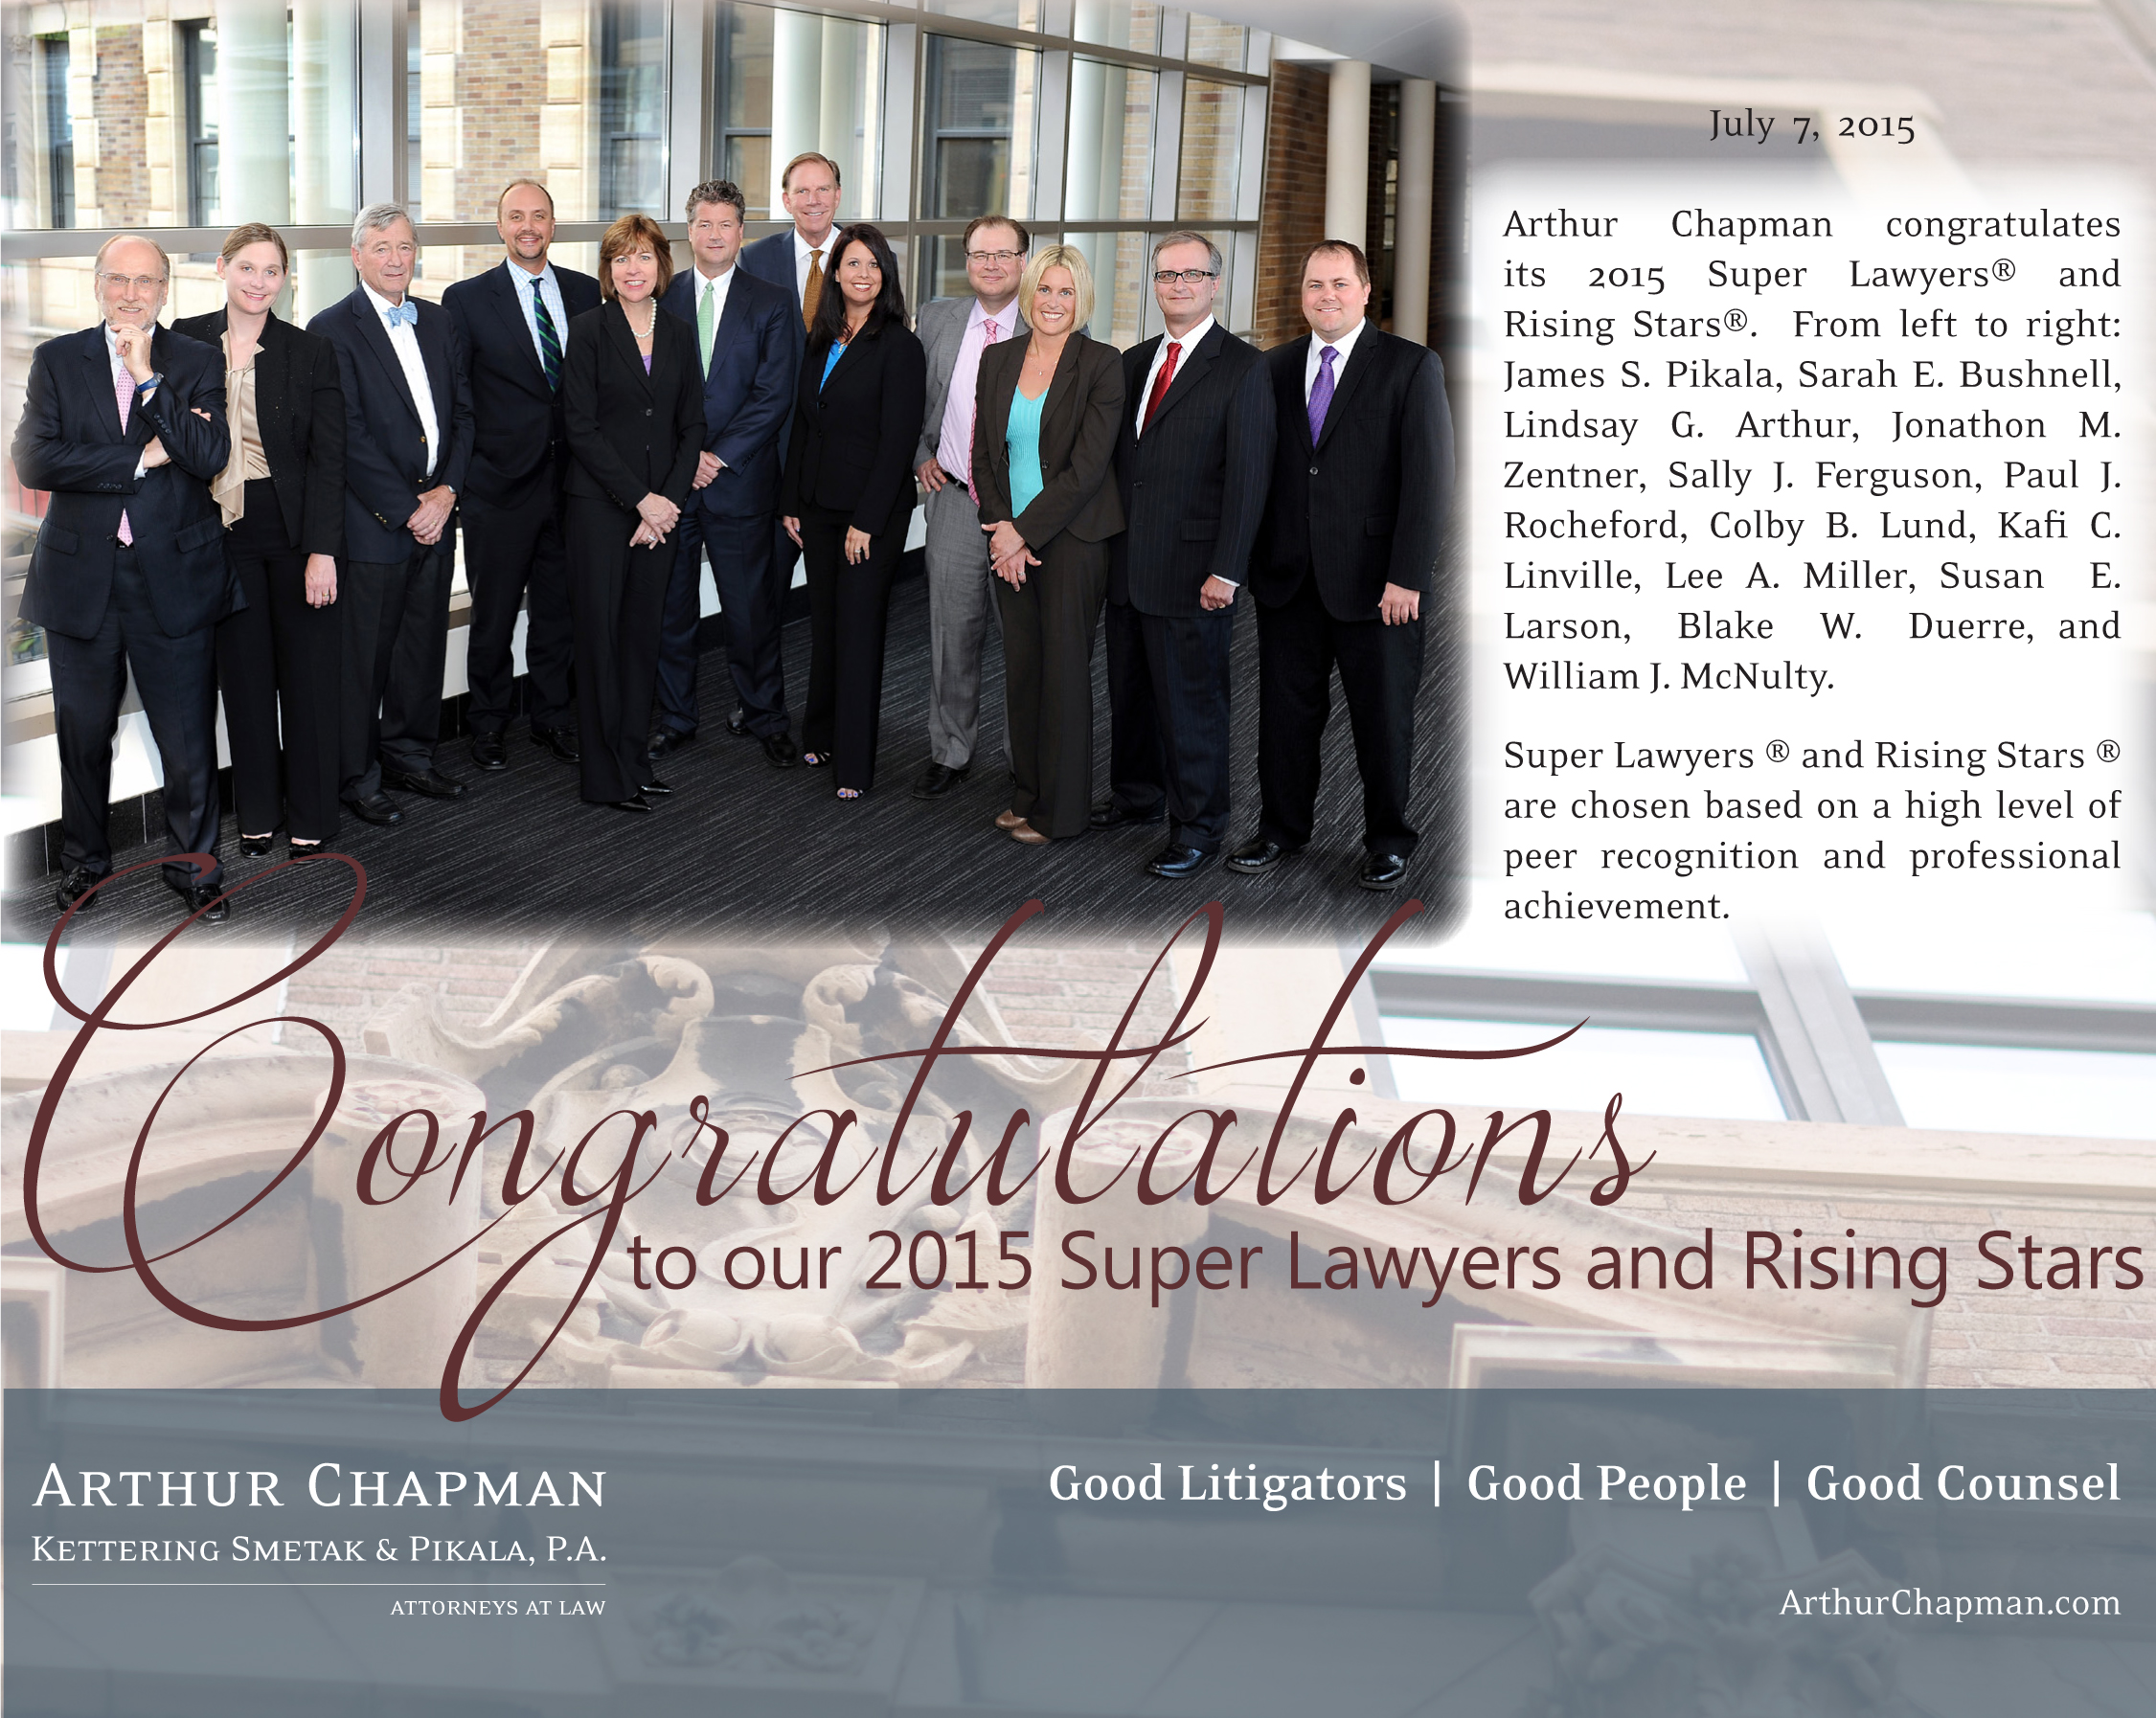 Super Lawyer and Rising Stars 2015